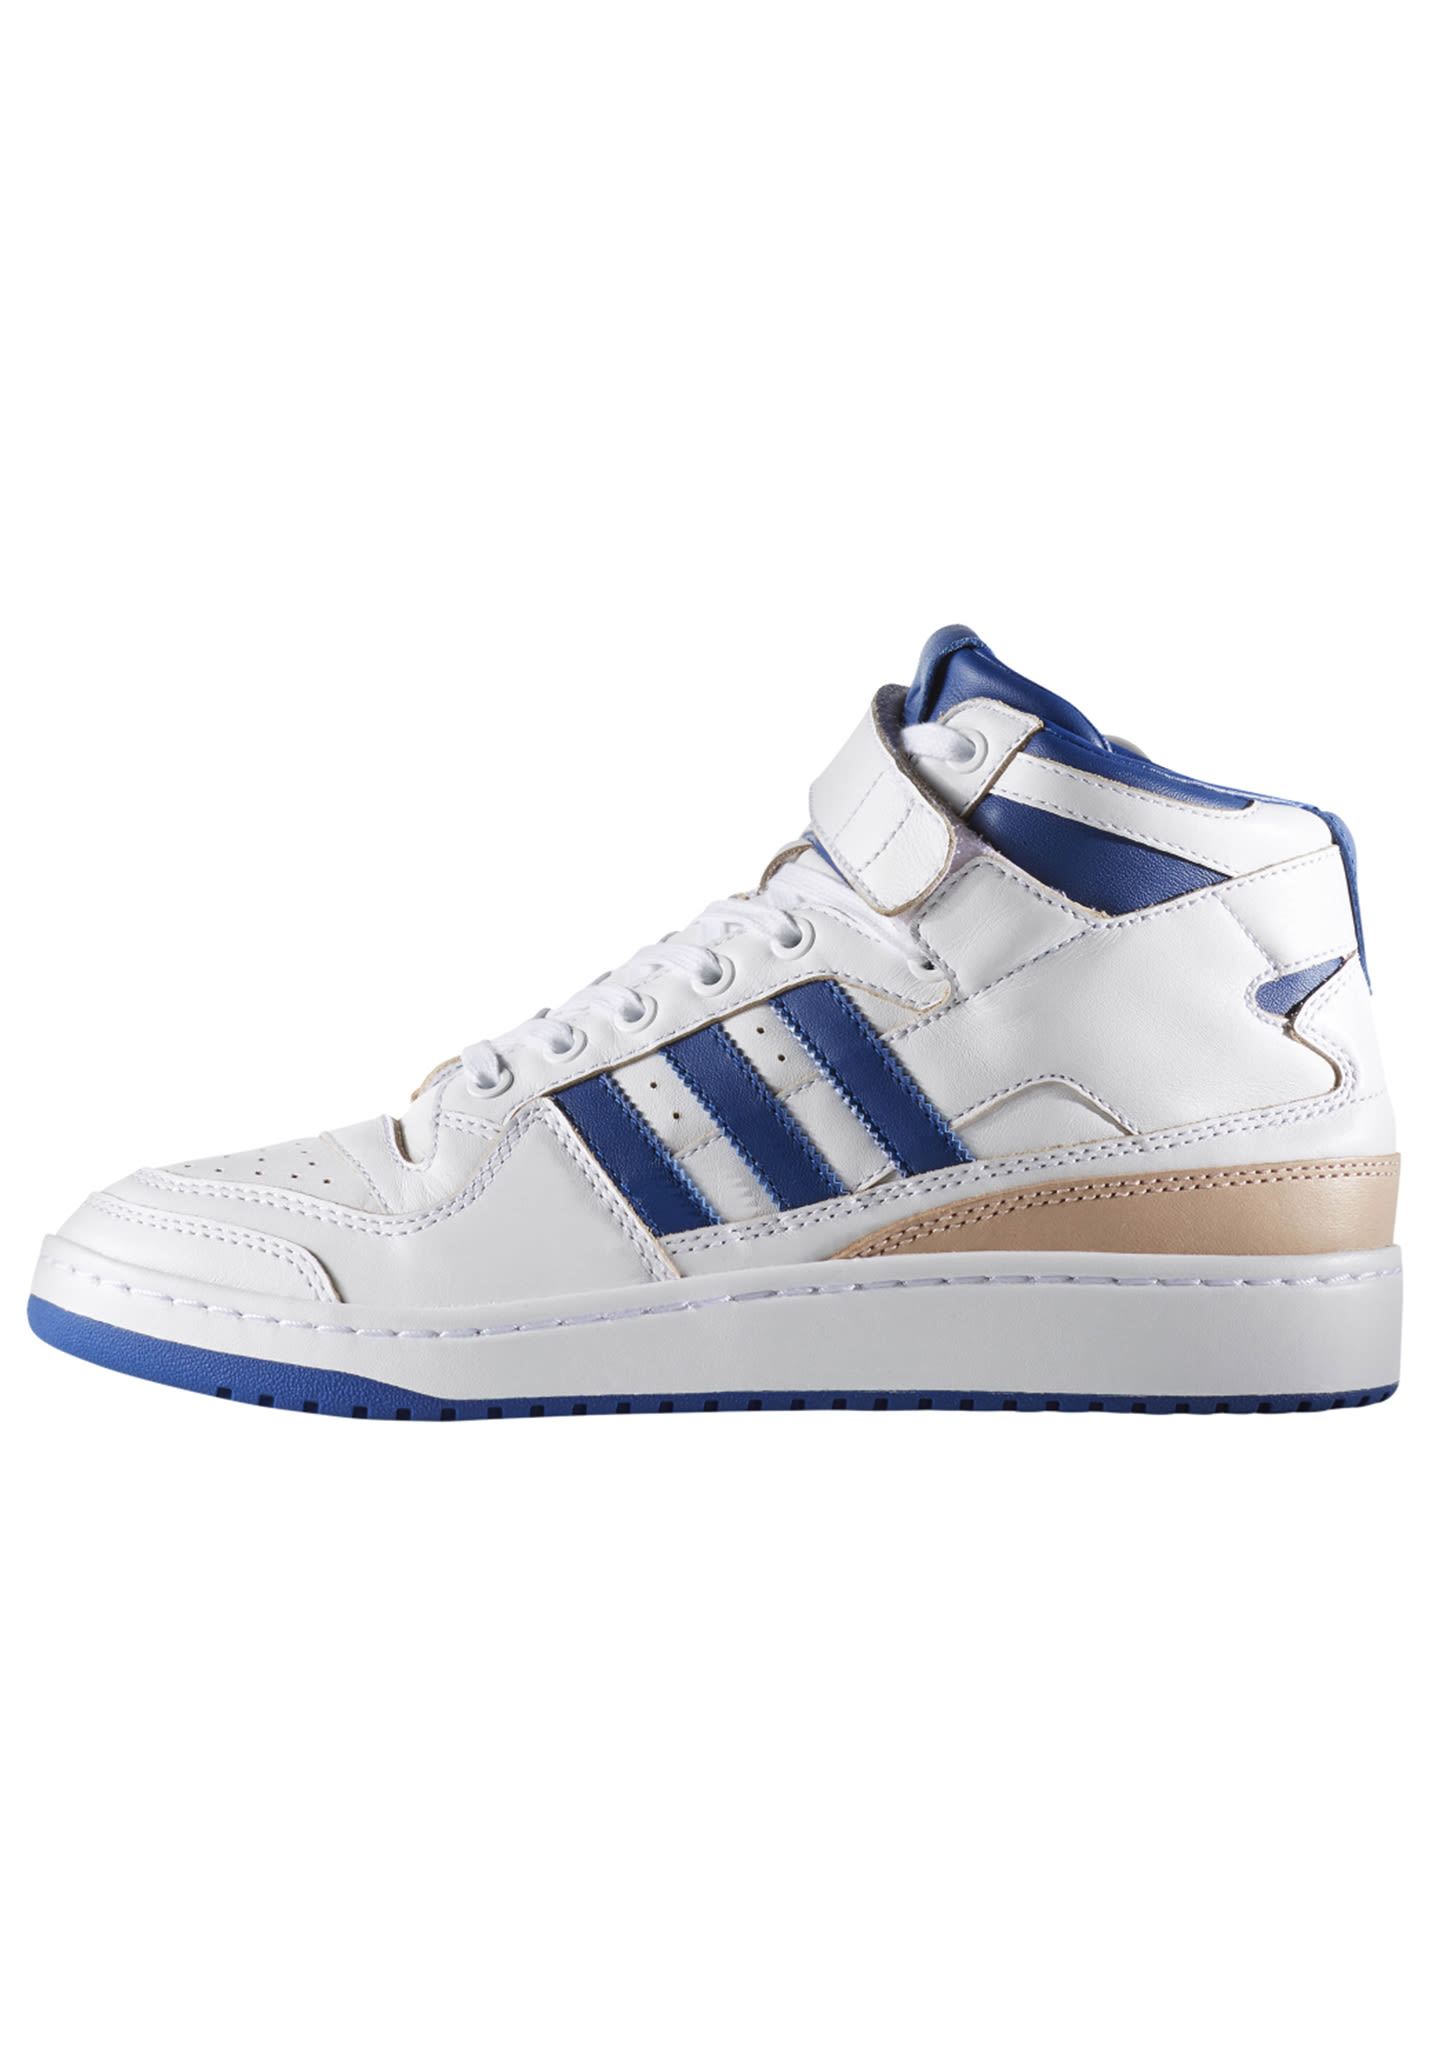 classic fit f573f 5e32f ADIDAS ORIGINALS Forum Mid Wrap - Sneakers for Men - White - Planet Sports